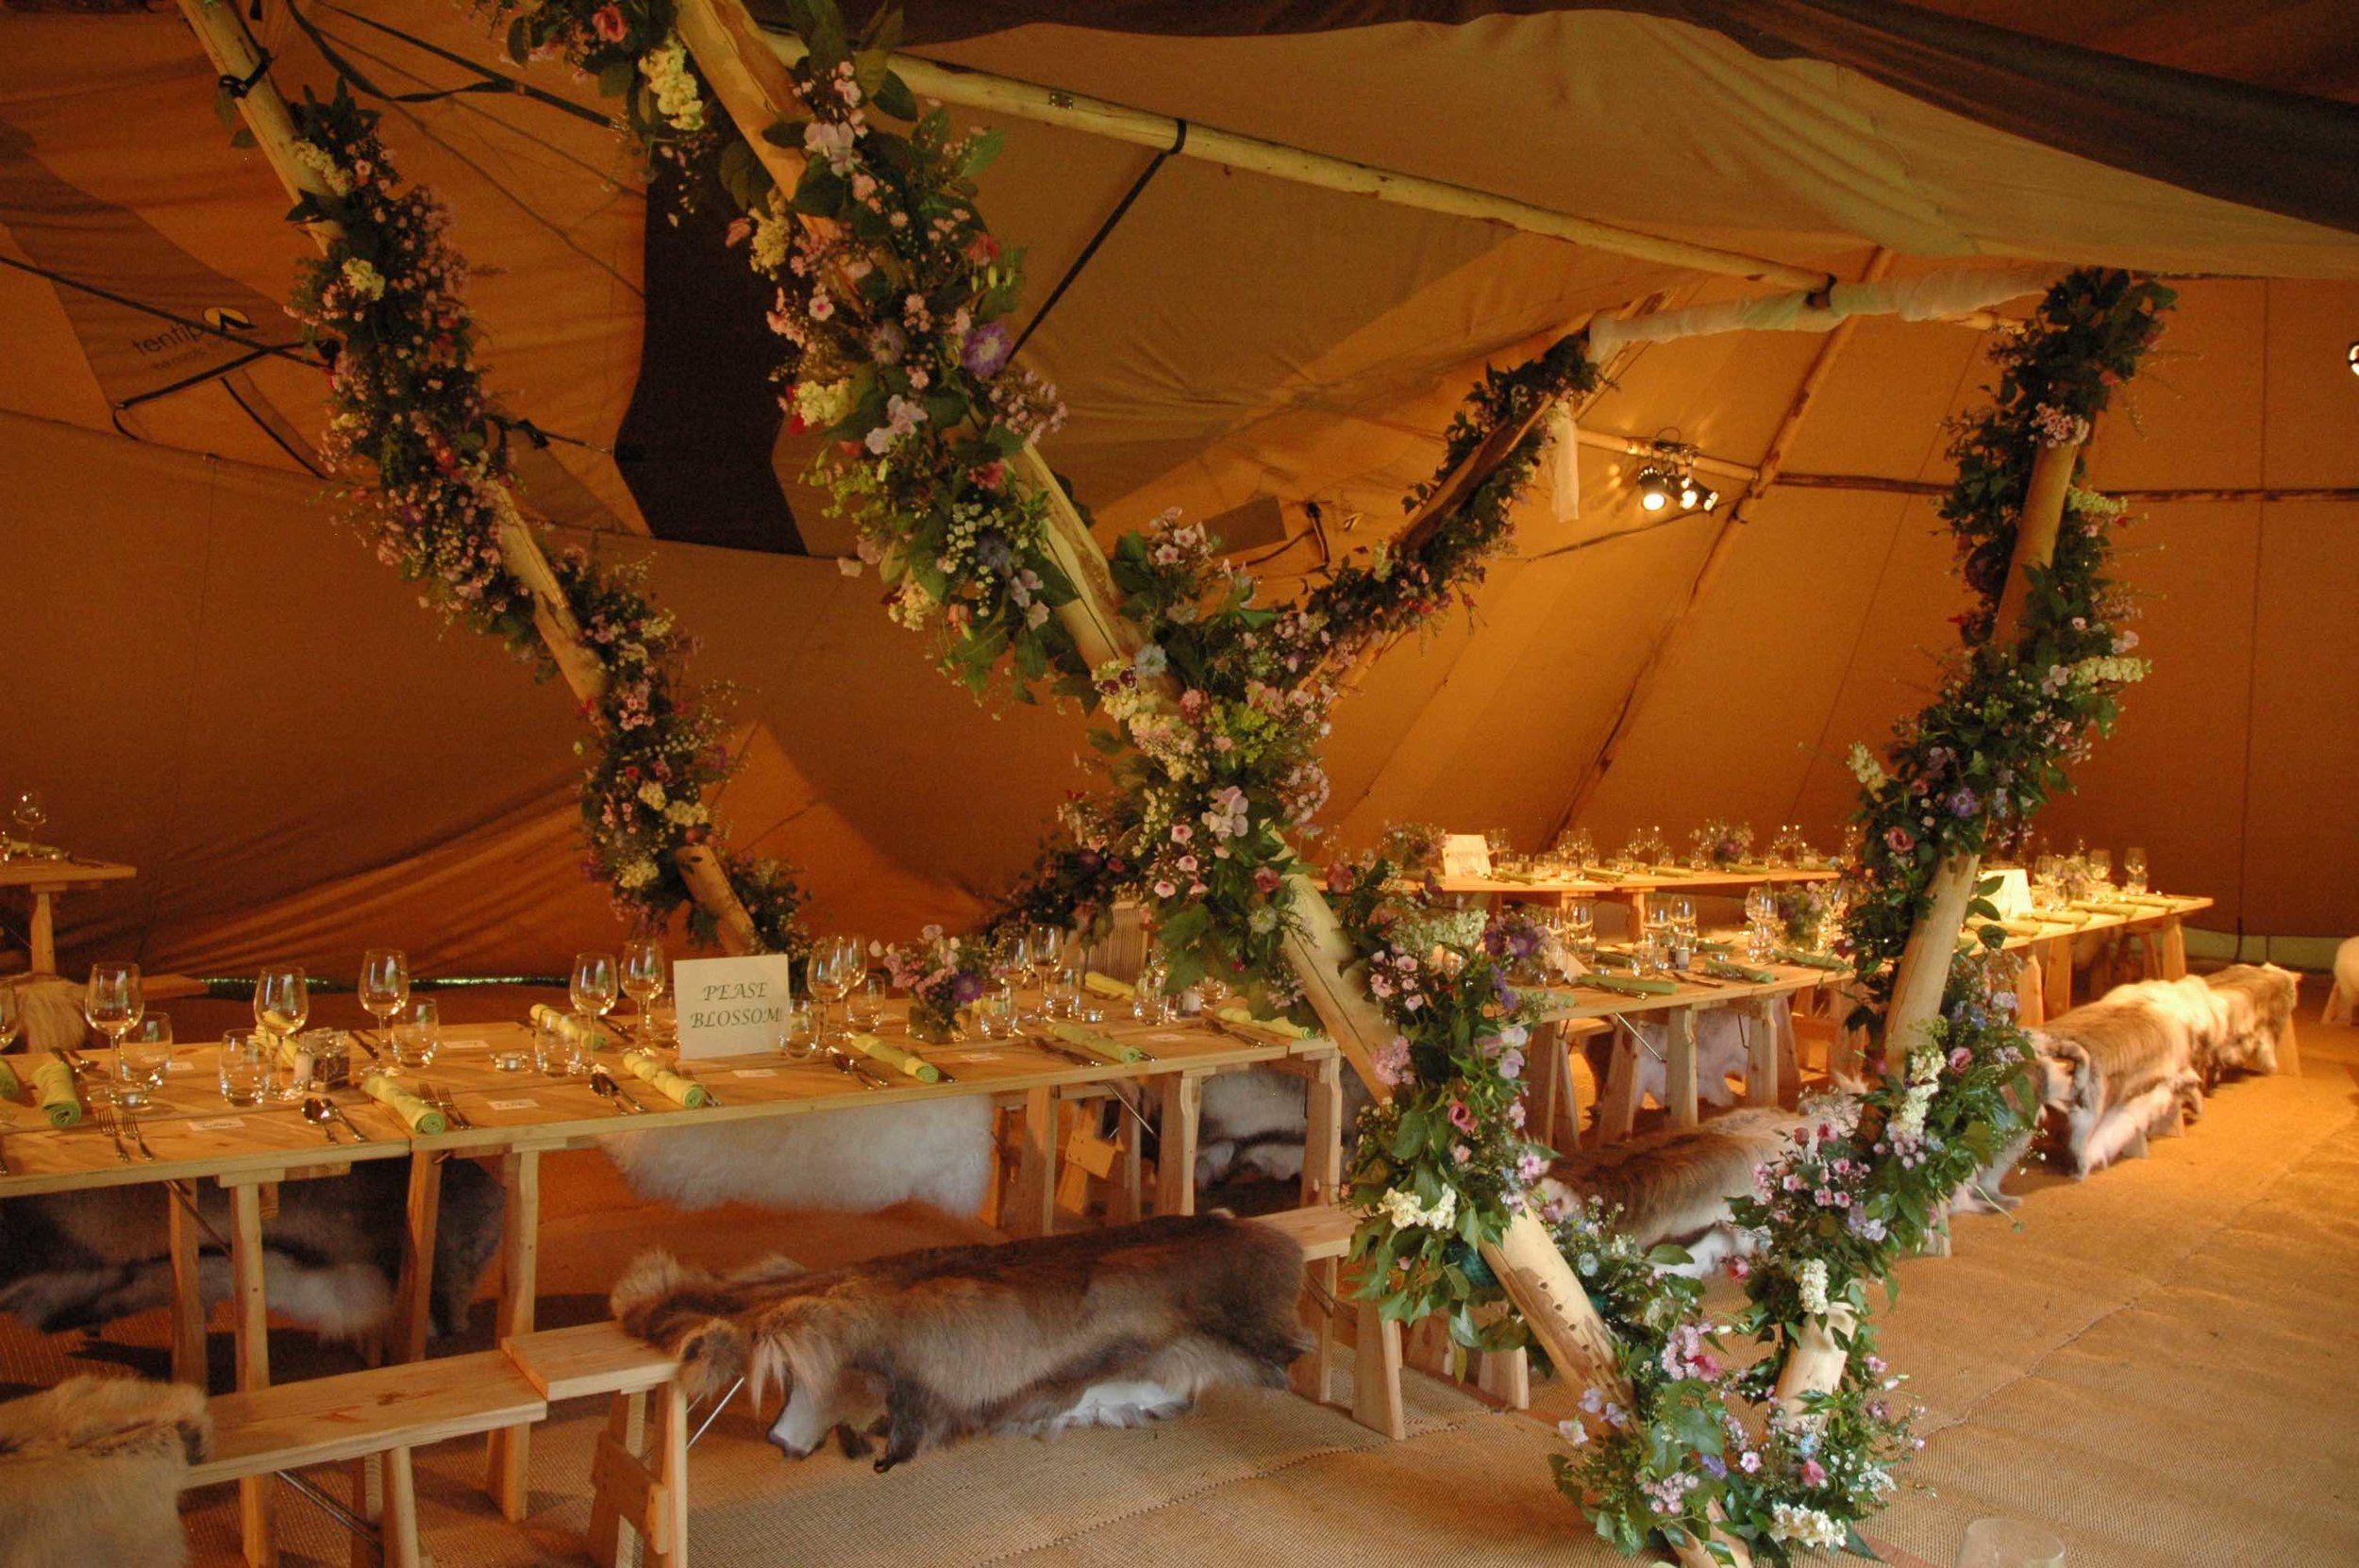 Dining tables and chairs for your wedding, party or corporate event can be hired as part of your package with our giant tipi tents, including all linen.